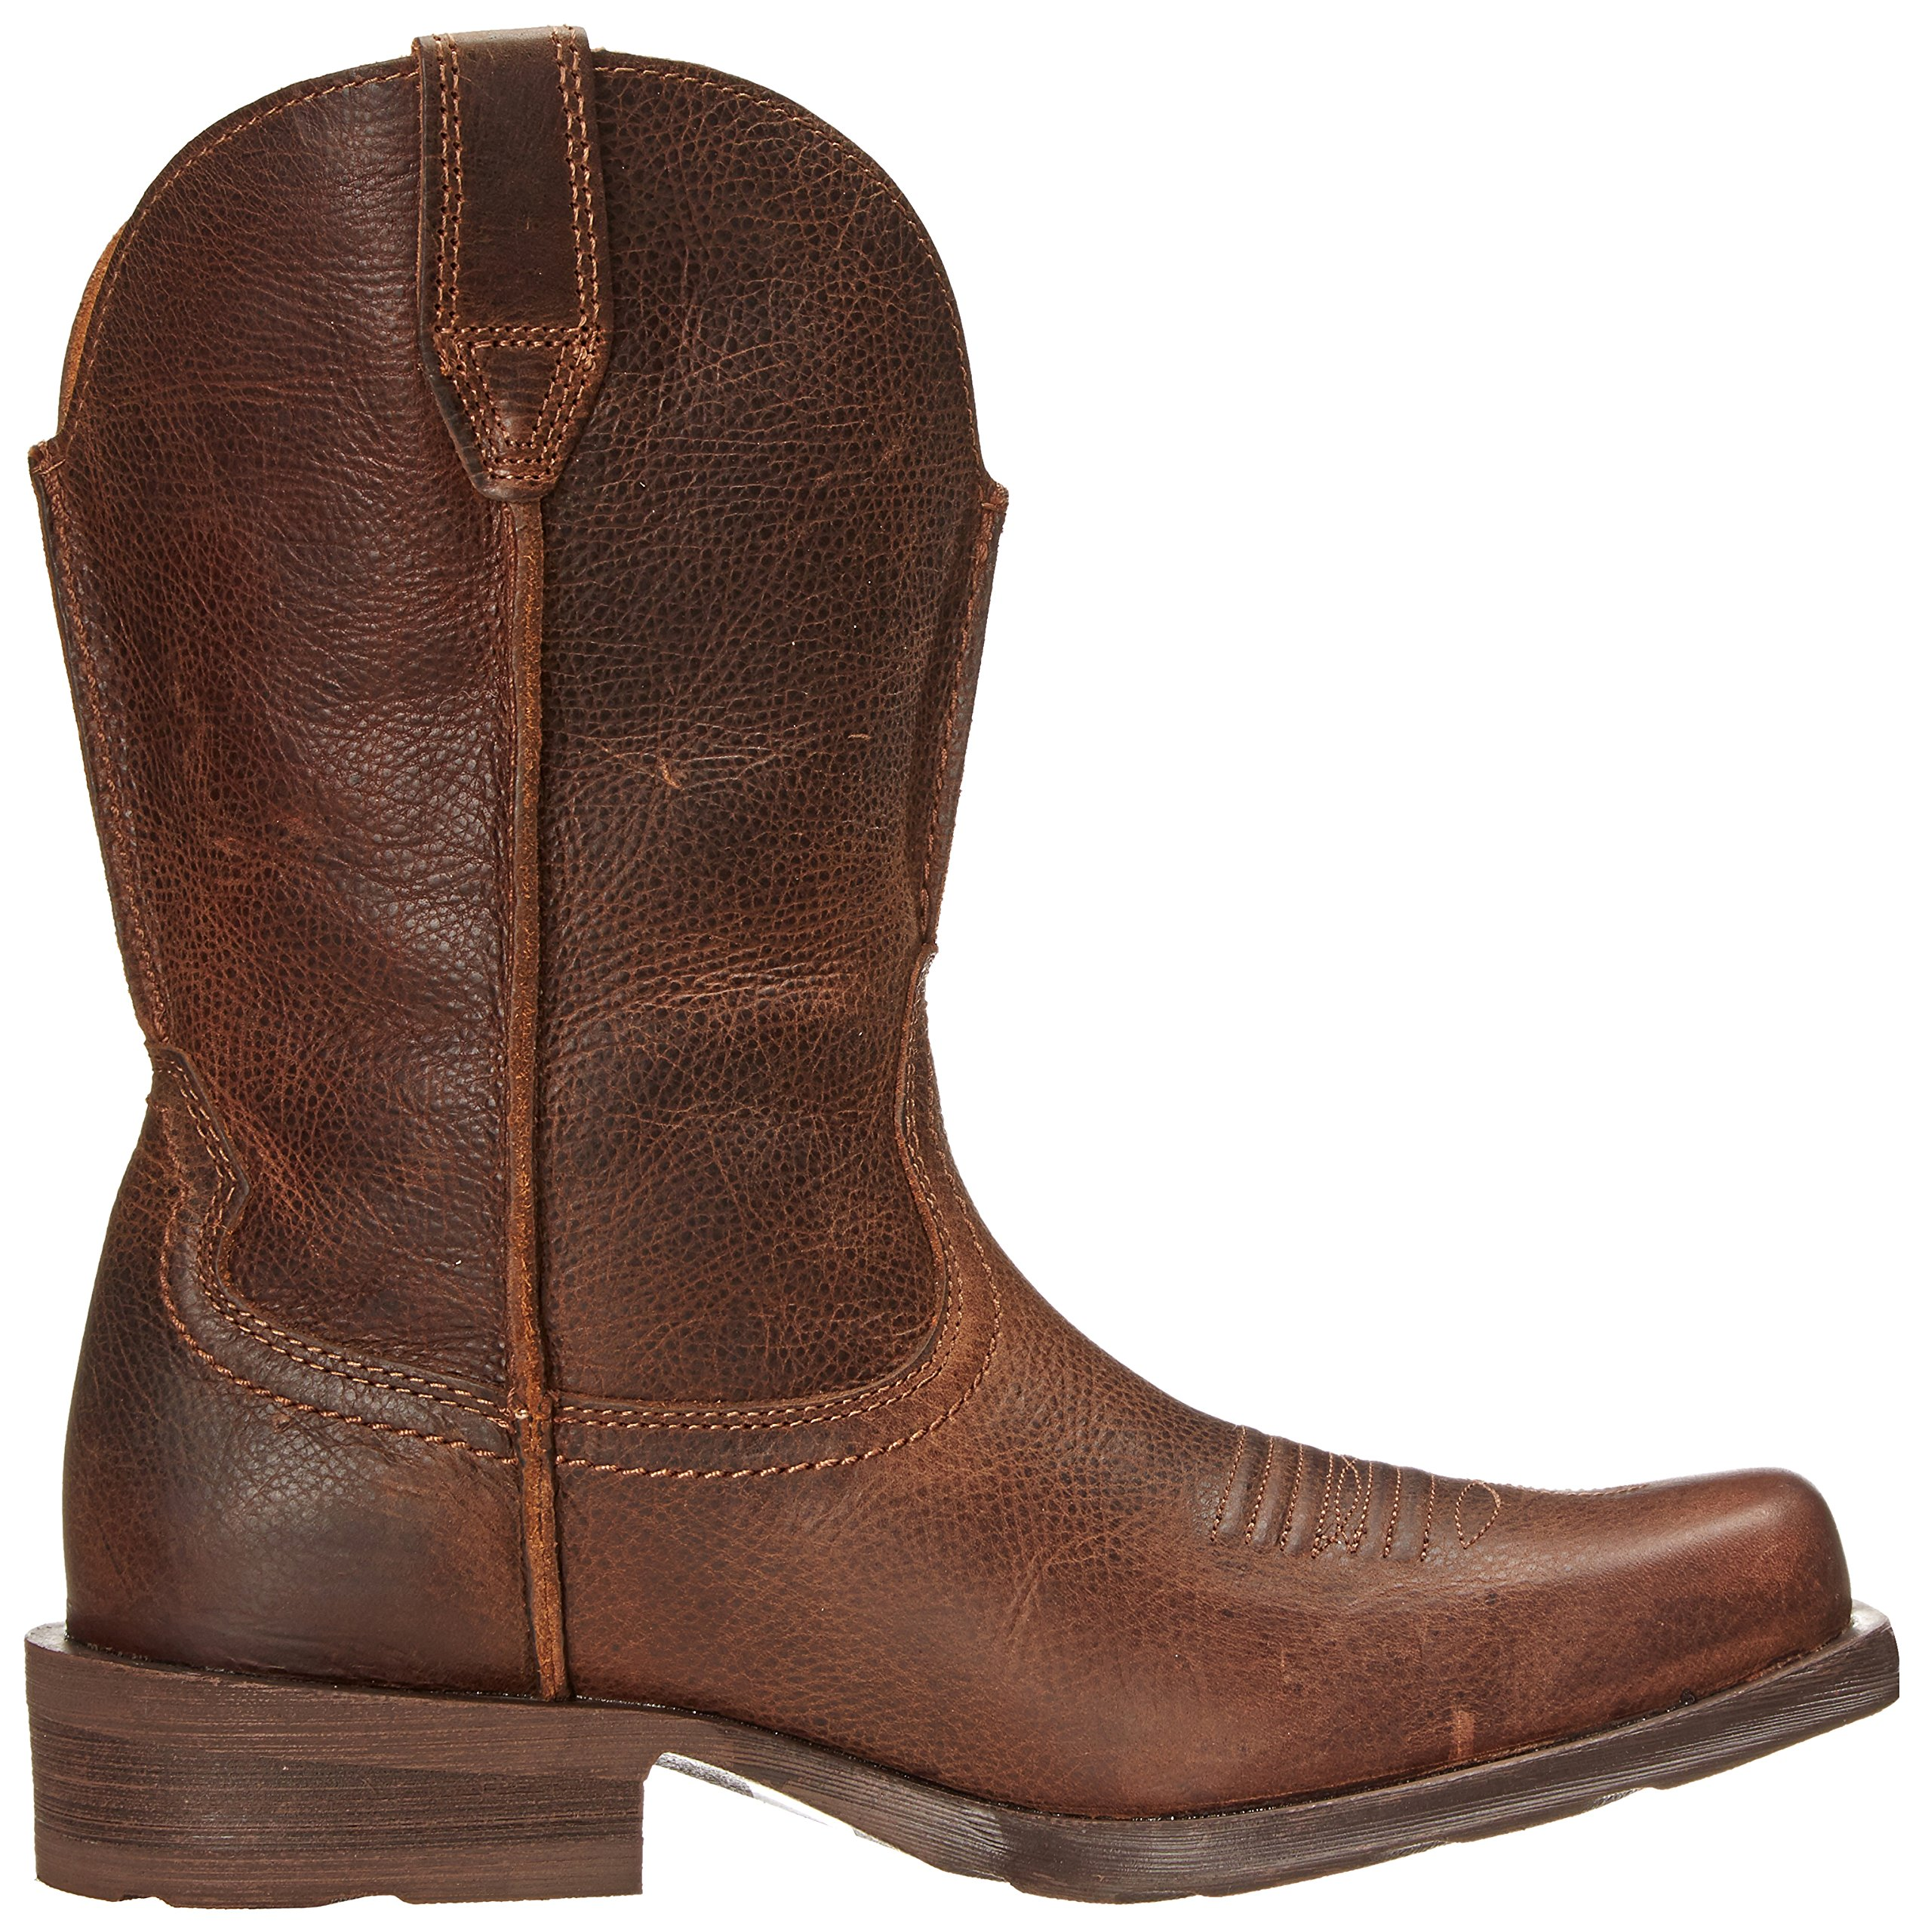 Ariat Men's Rambler Wide Square Toe Western Cowboy Boot, Wicker, 10 M US by ARIAT (Image #7)